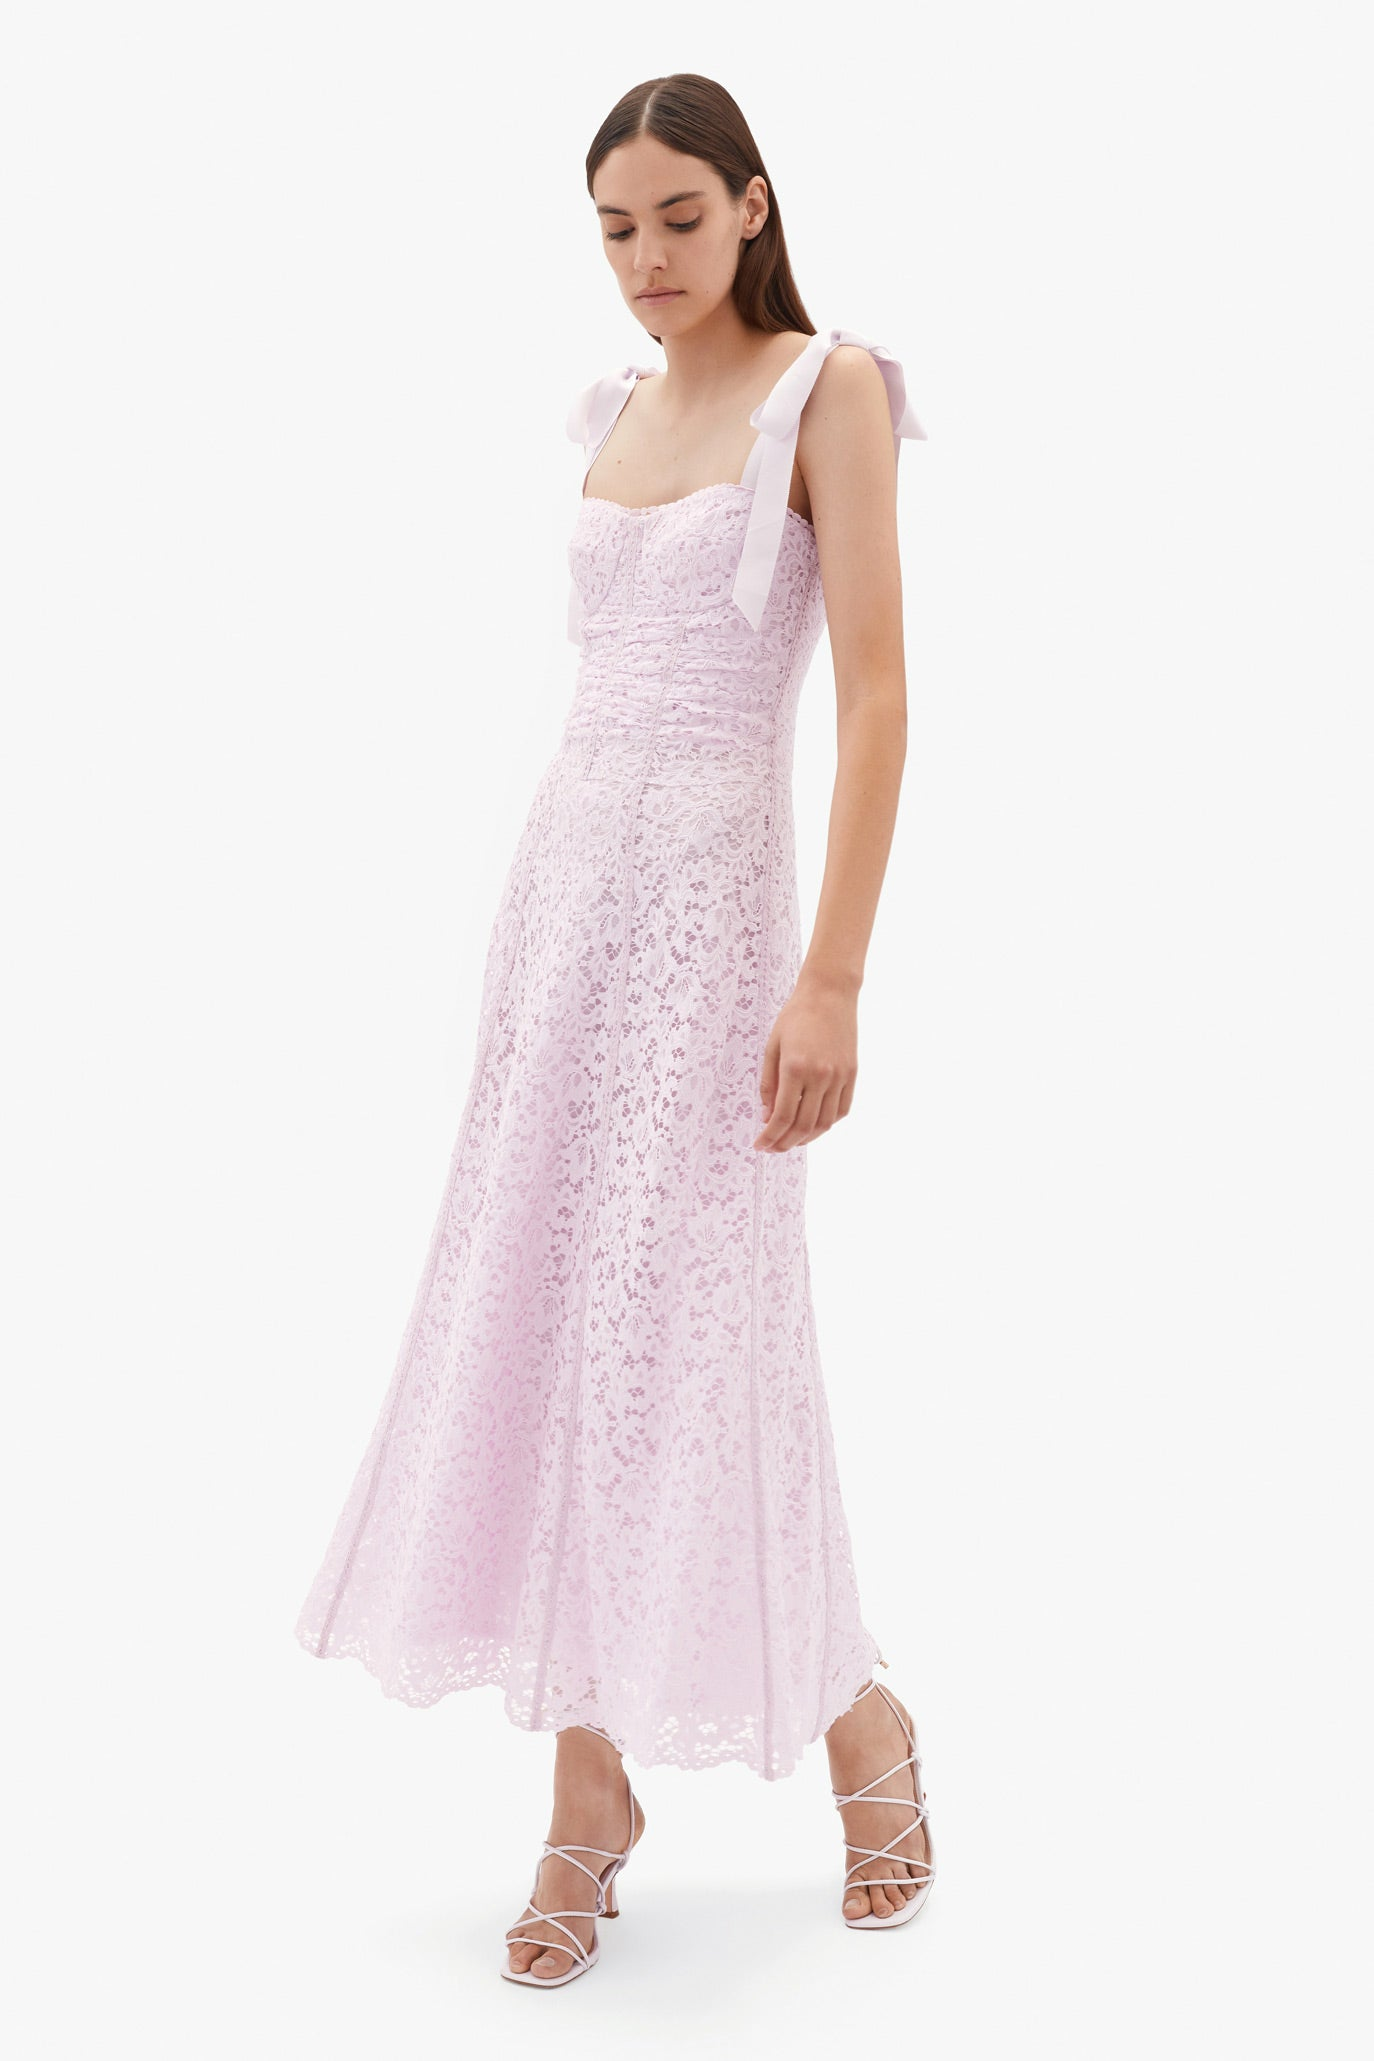 Poppy Corded Lace Midi Dress